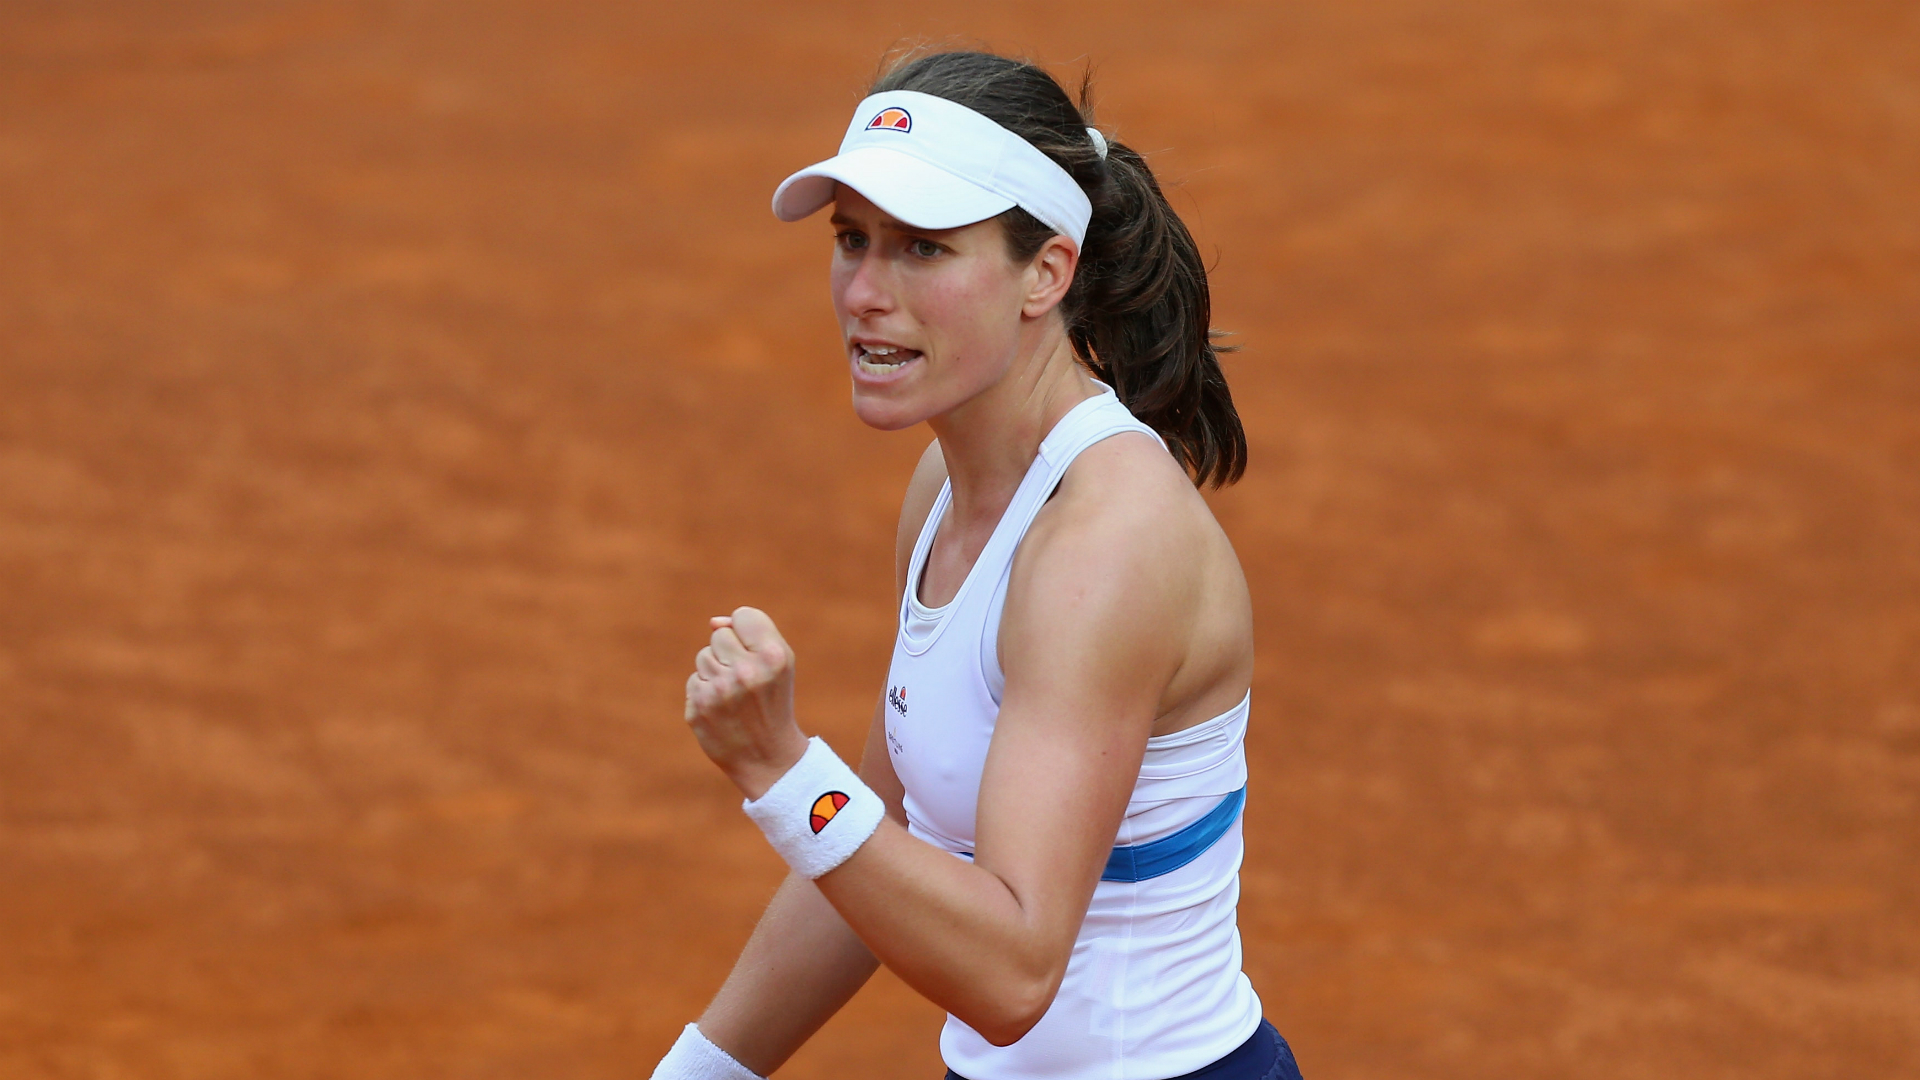 Konta celebrates birthday in style, Pliskova marches on in Rome